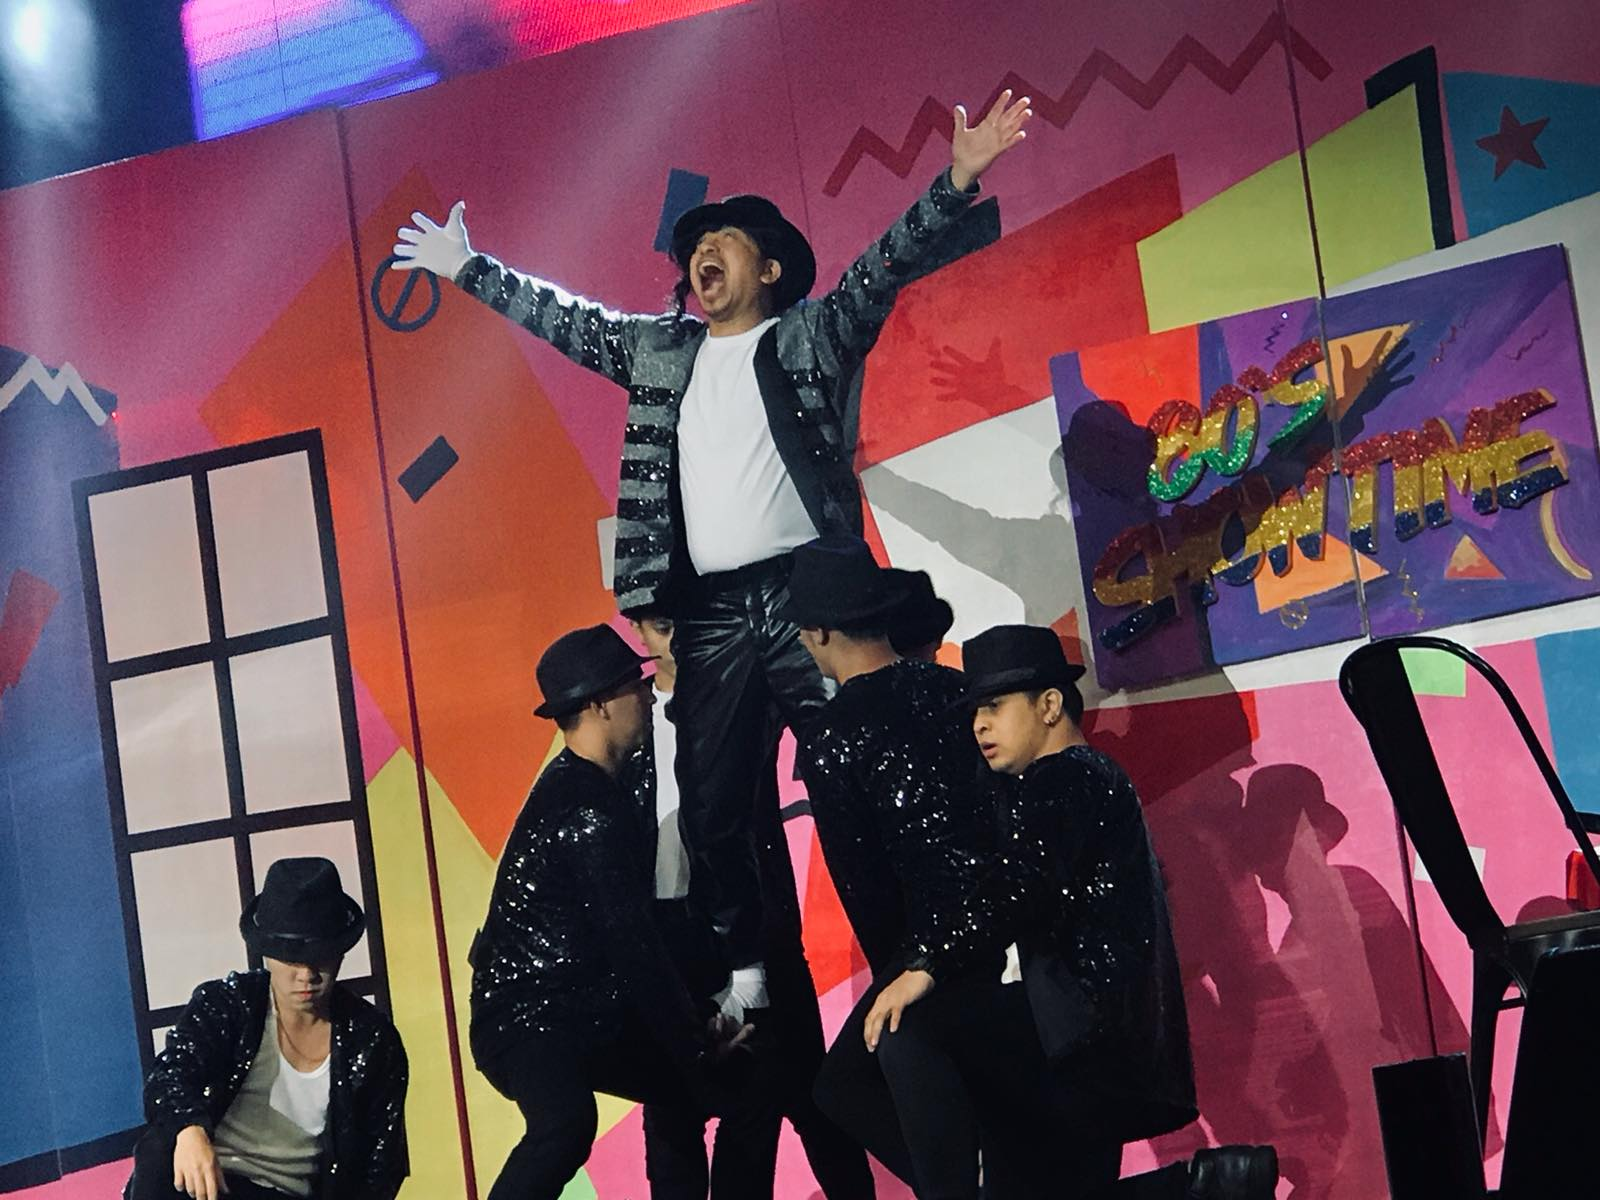 Magpasikat 2019: Team Jhong, Jugs and Teddy showcases out-of-the-box time warp